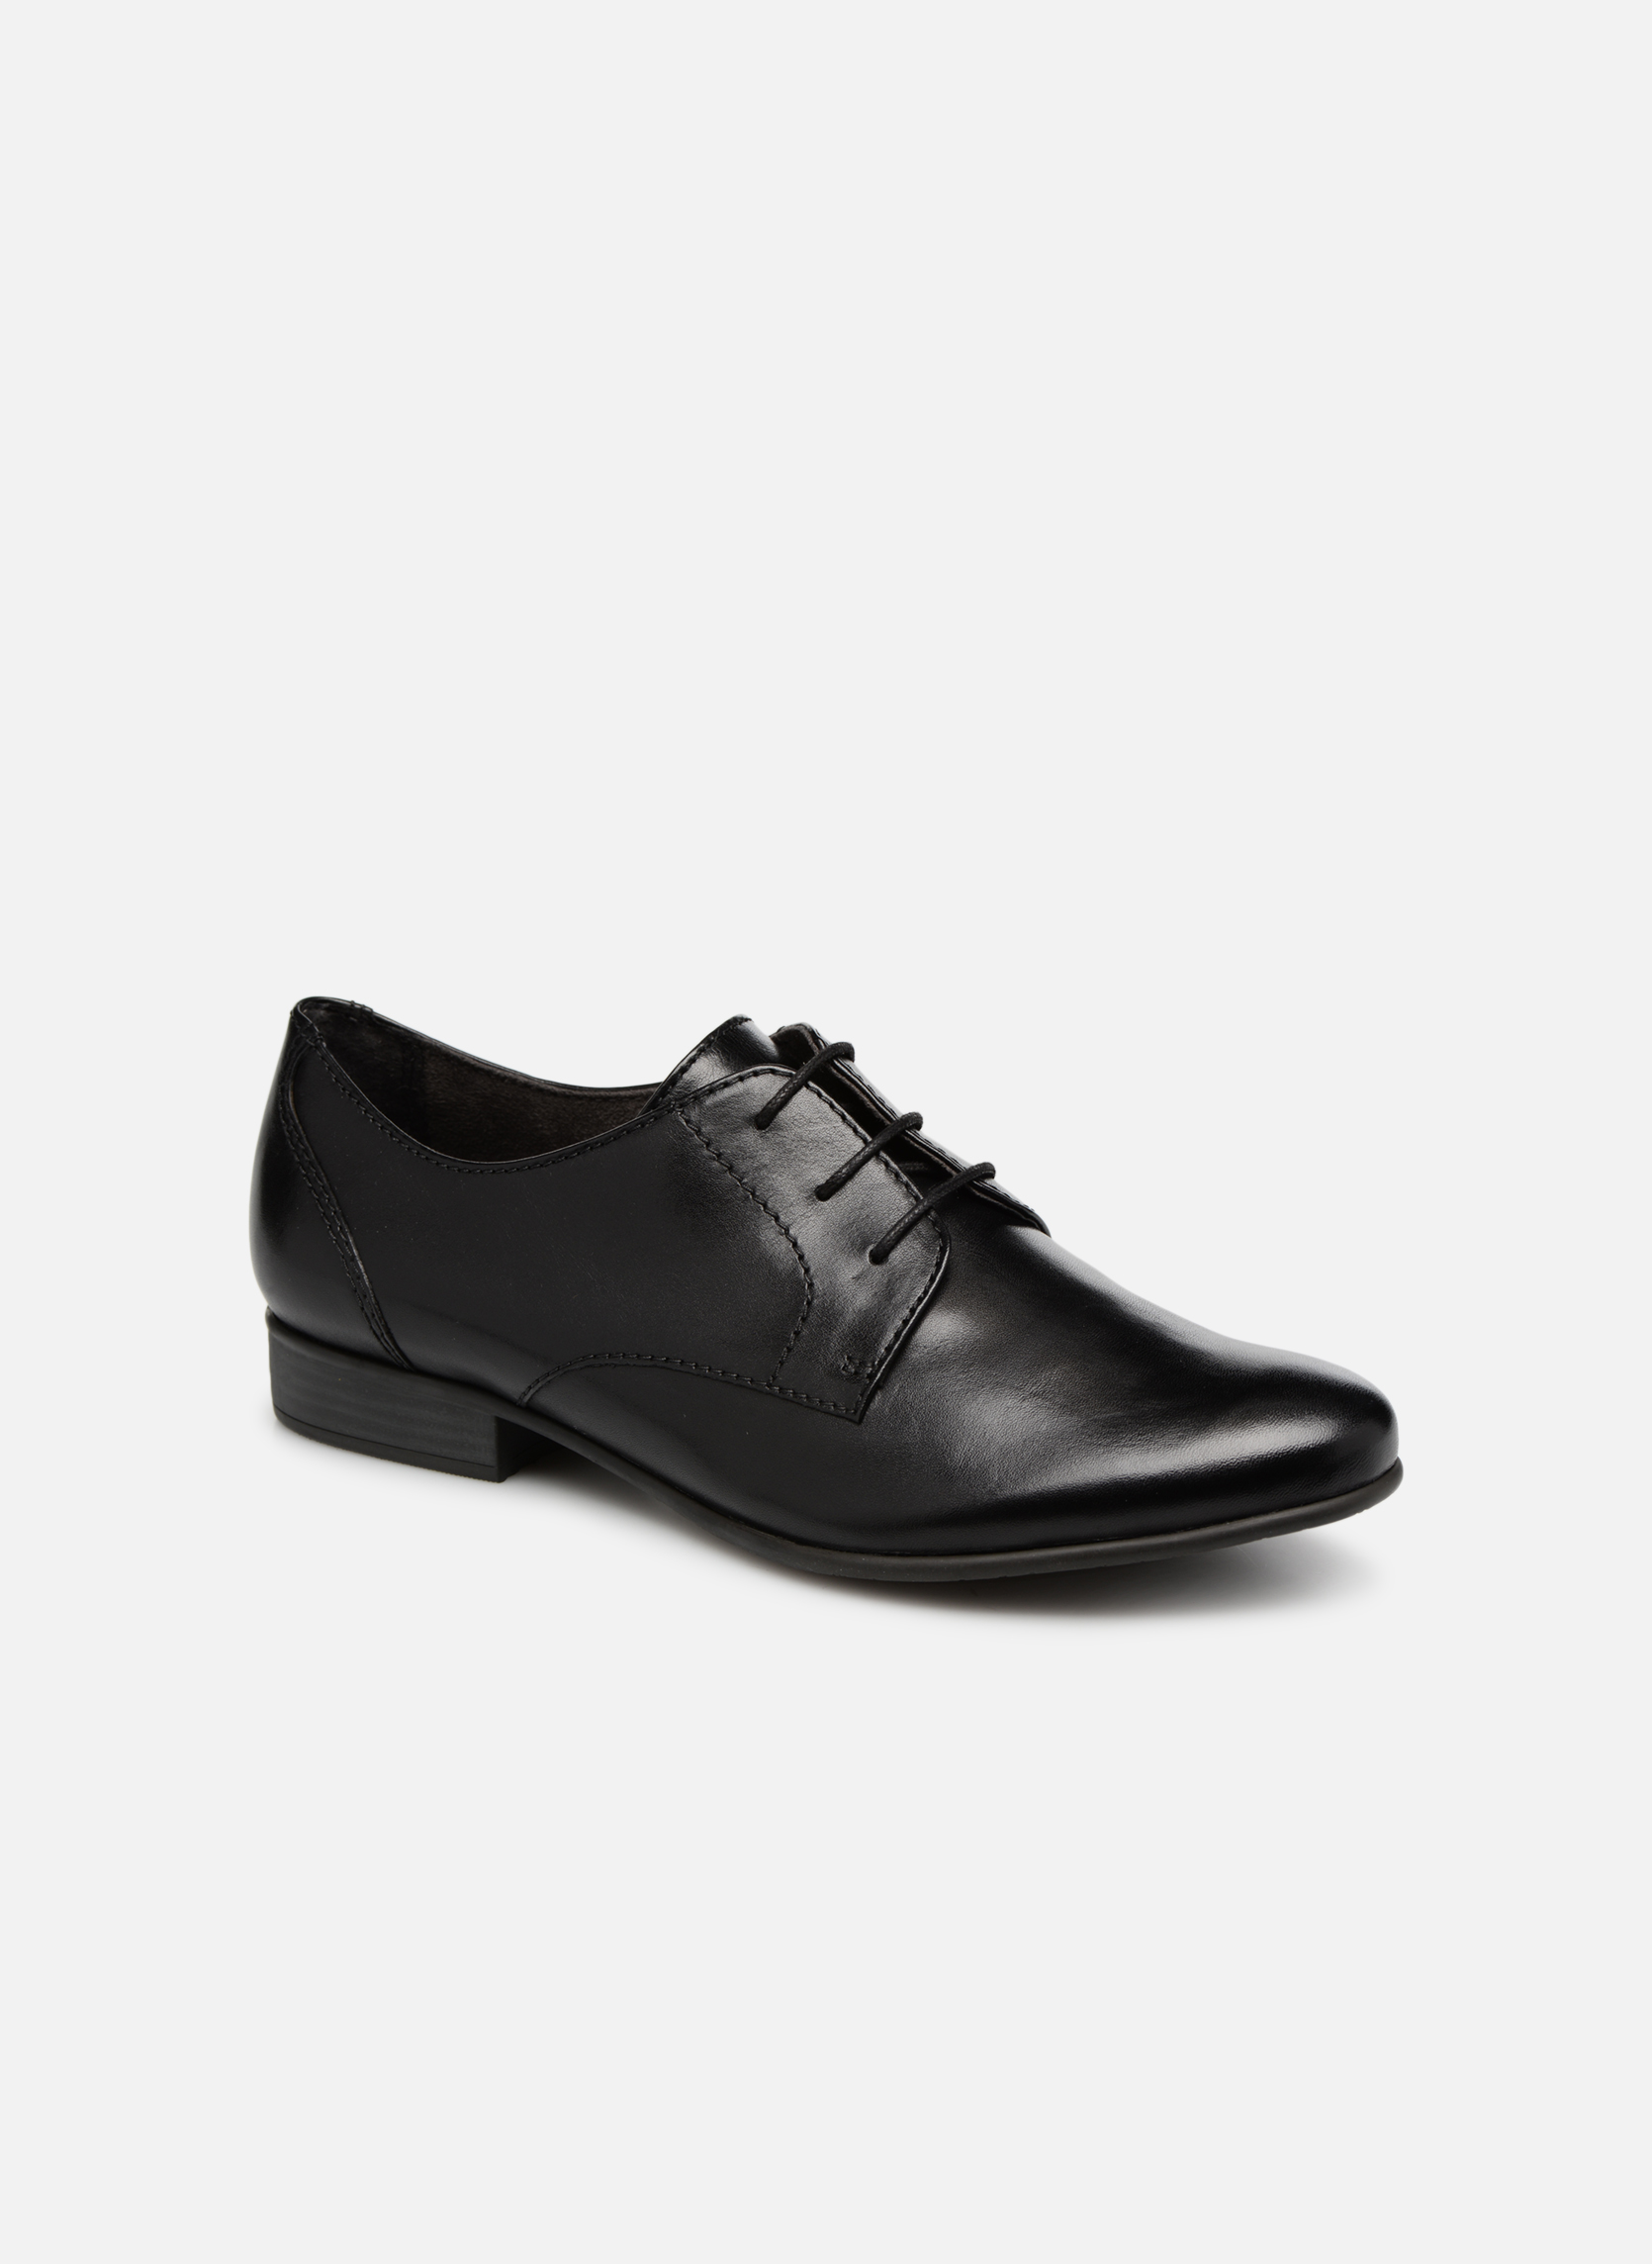 Coriandre Black leather